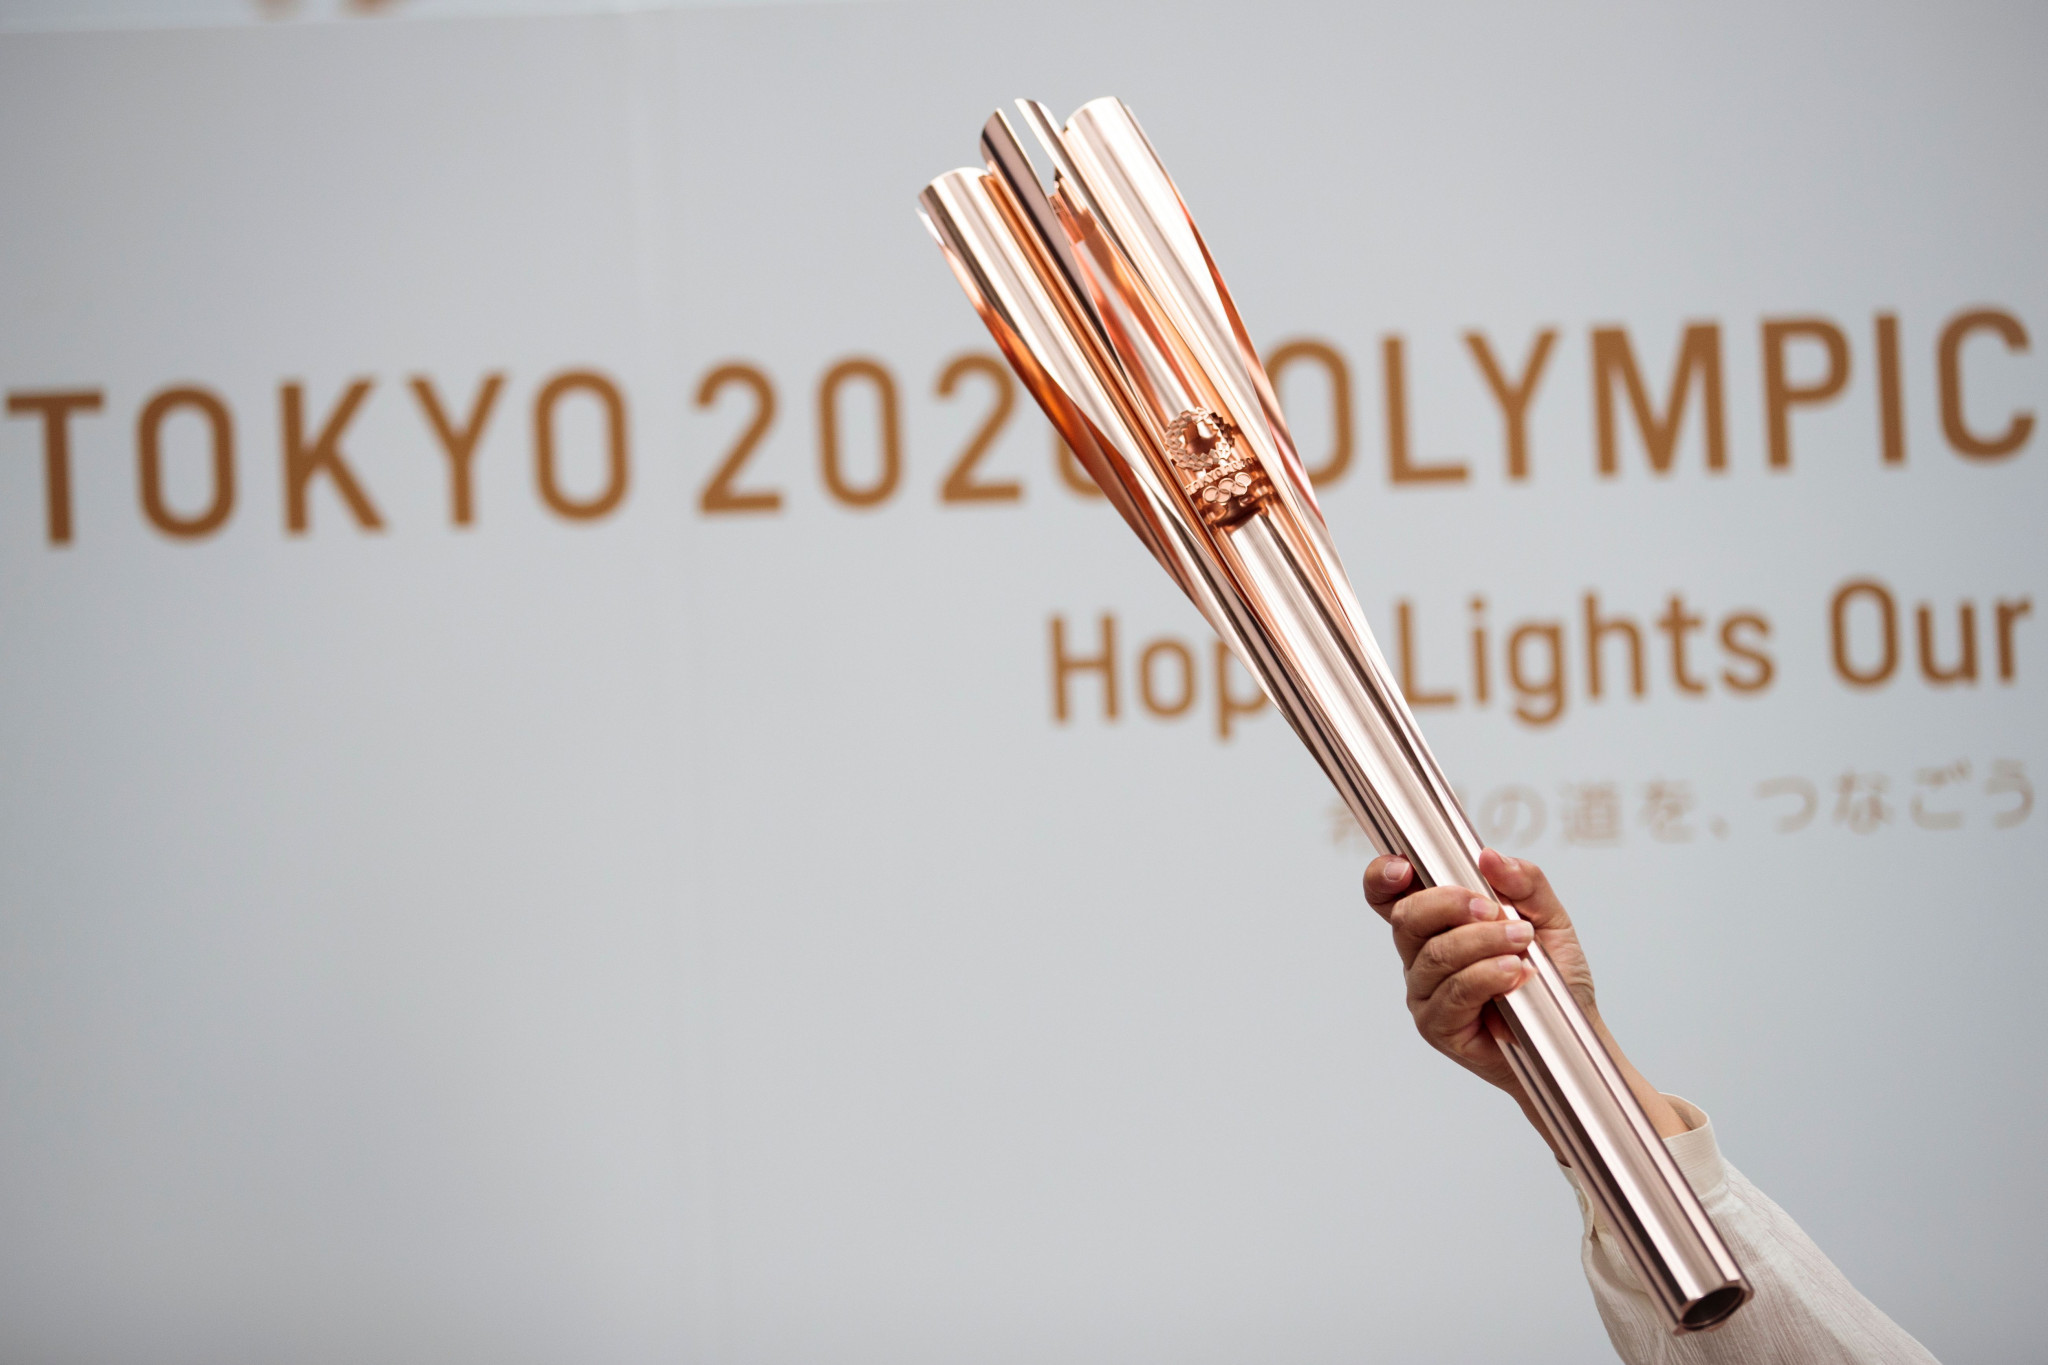 Tokyo 2020 receive more than 530,000 applications to run in Torch Relay